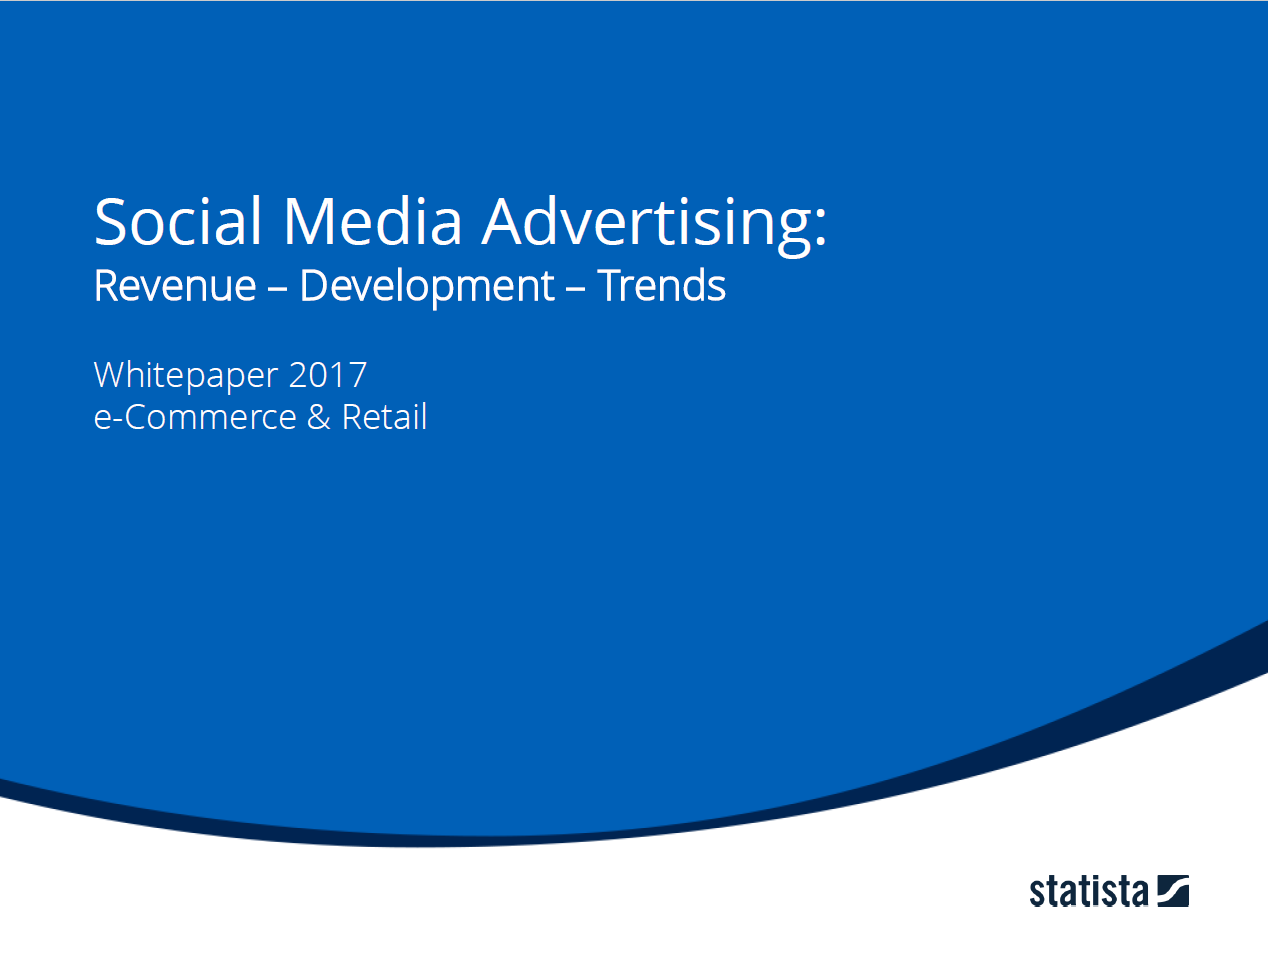 Social Media Advertising Whitepaper: Revenue, Development & Trends